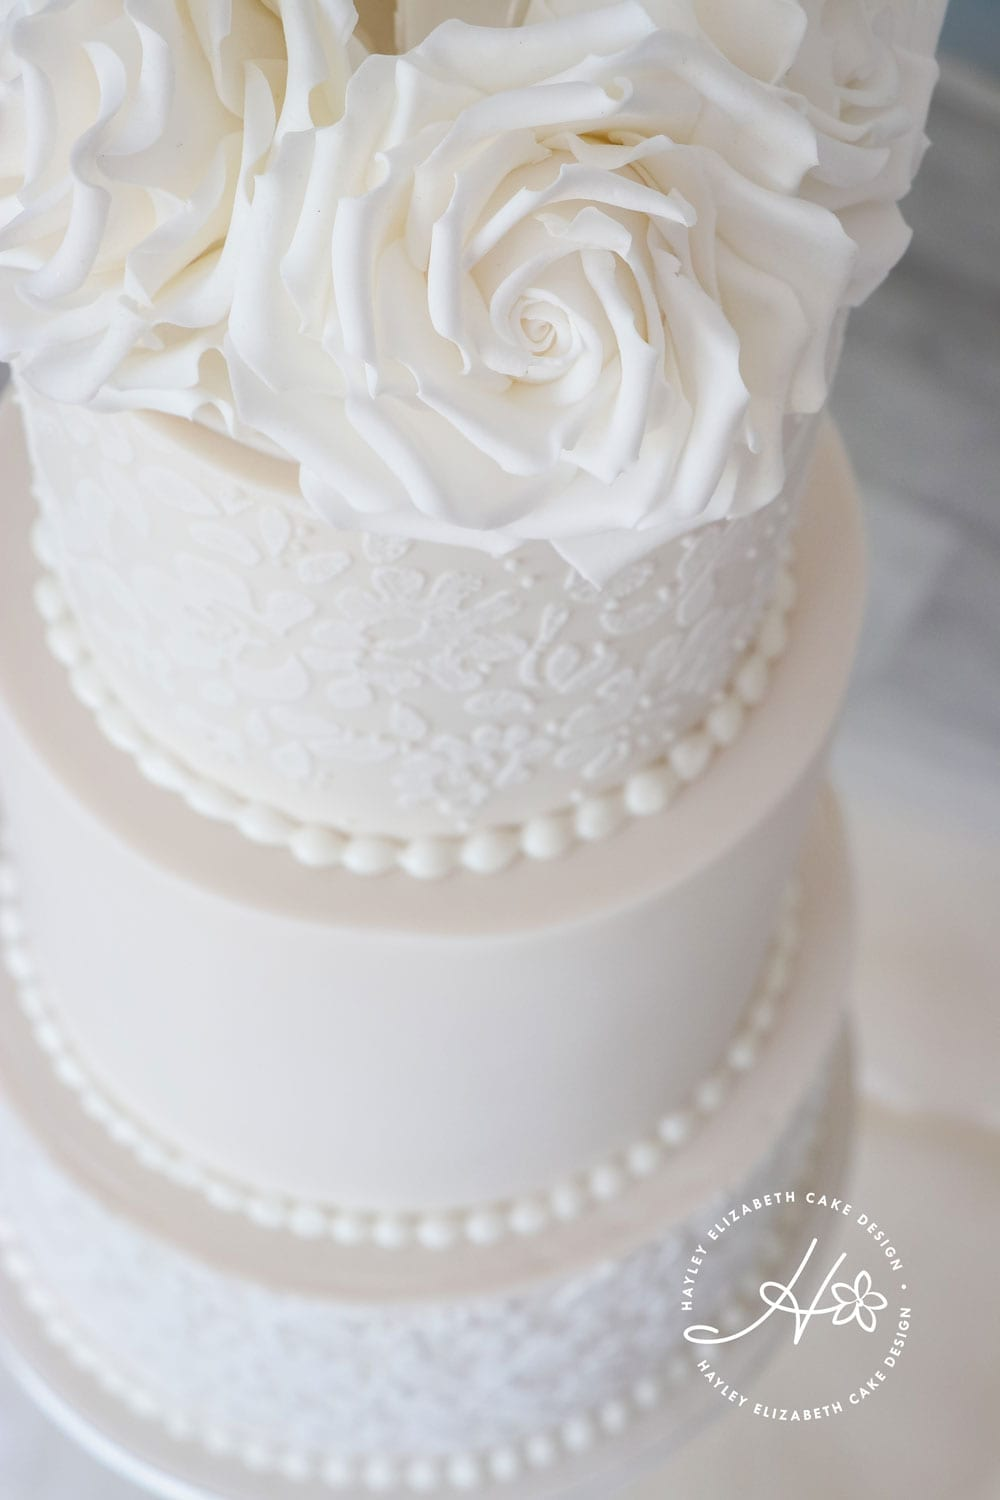 All white wedding cake from Hayley Elizabeth Cake Design, luxury wedding cake, elegant wedding cake, sugar flowers, wedding cake inspiration, Hampshire wedding cake design, cake art, Dorset cake design, wedding planning